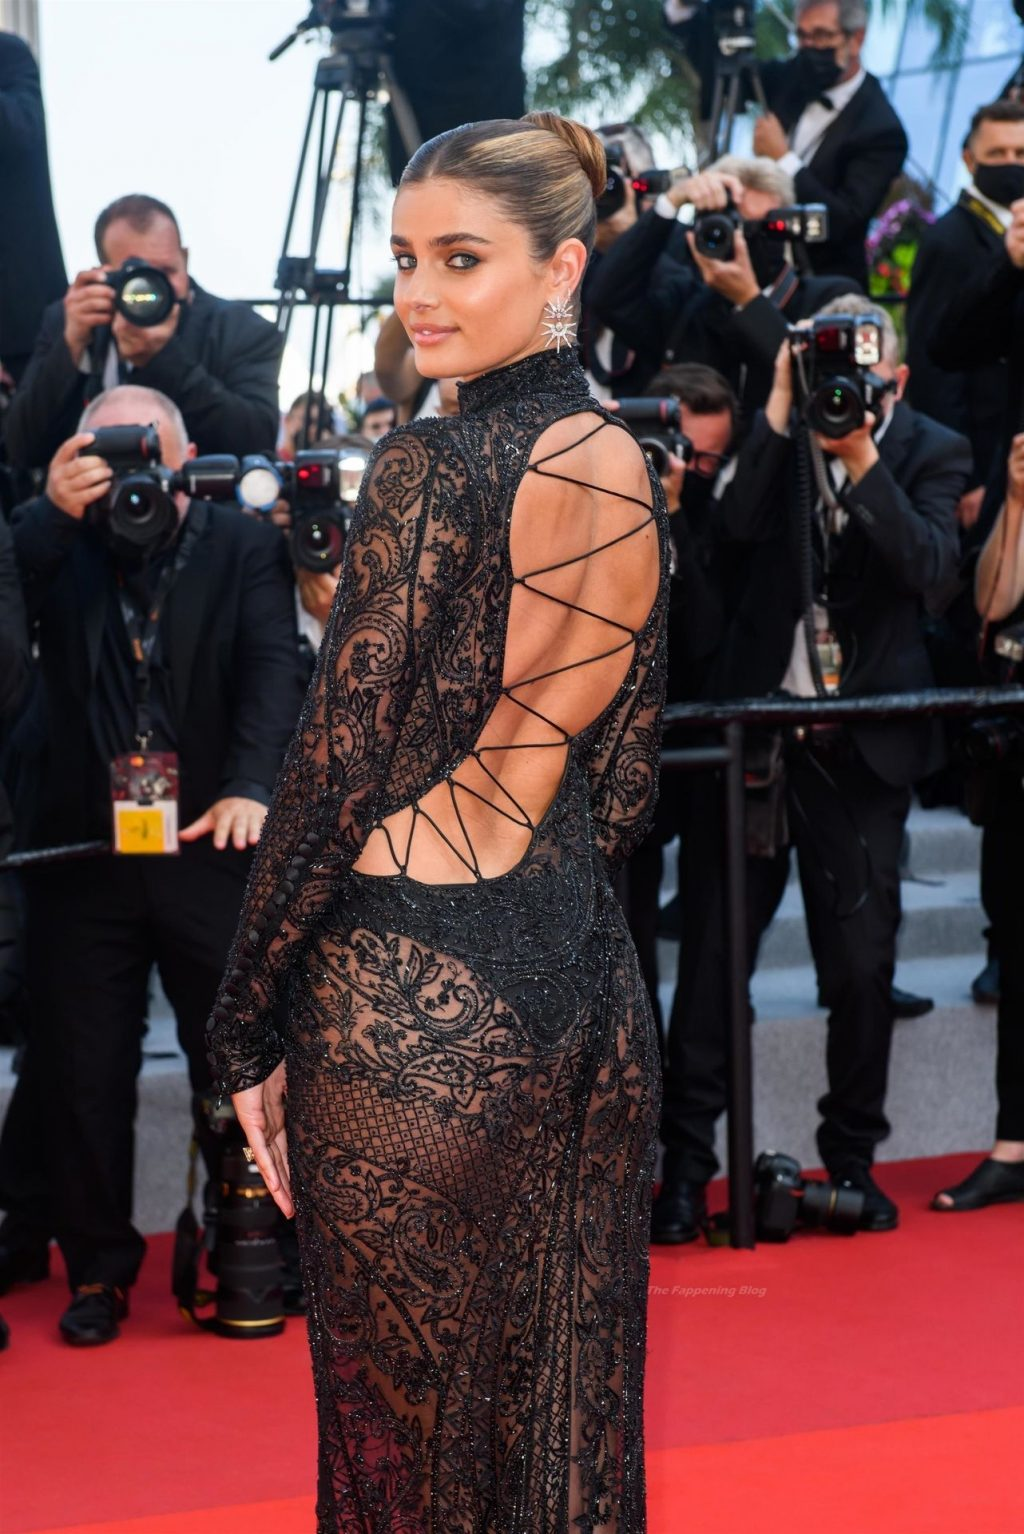 Taylor Hill Shows Off Her Figure in a Sheer Dress the 74th annual Cannes Film Festival (109 Photos)